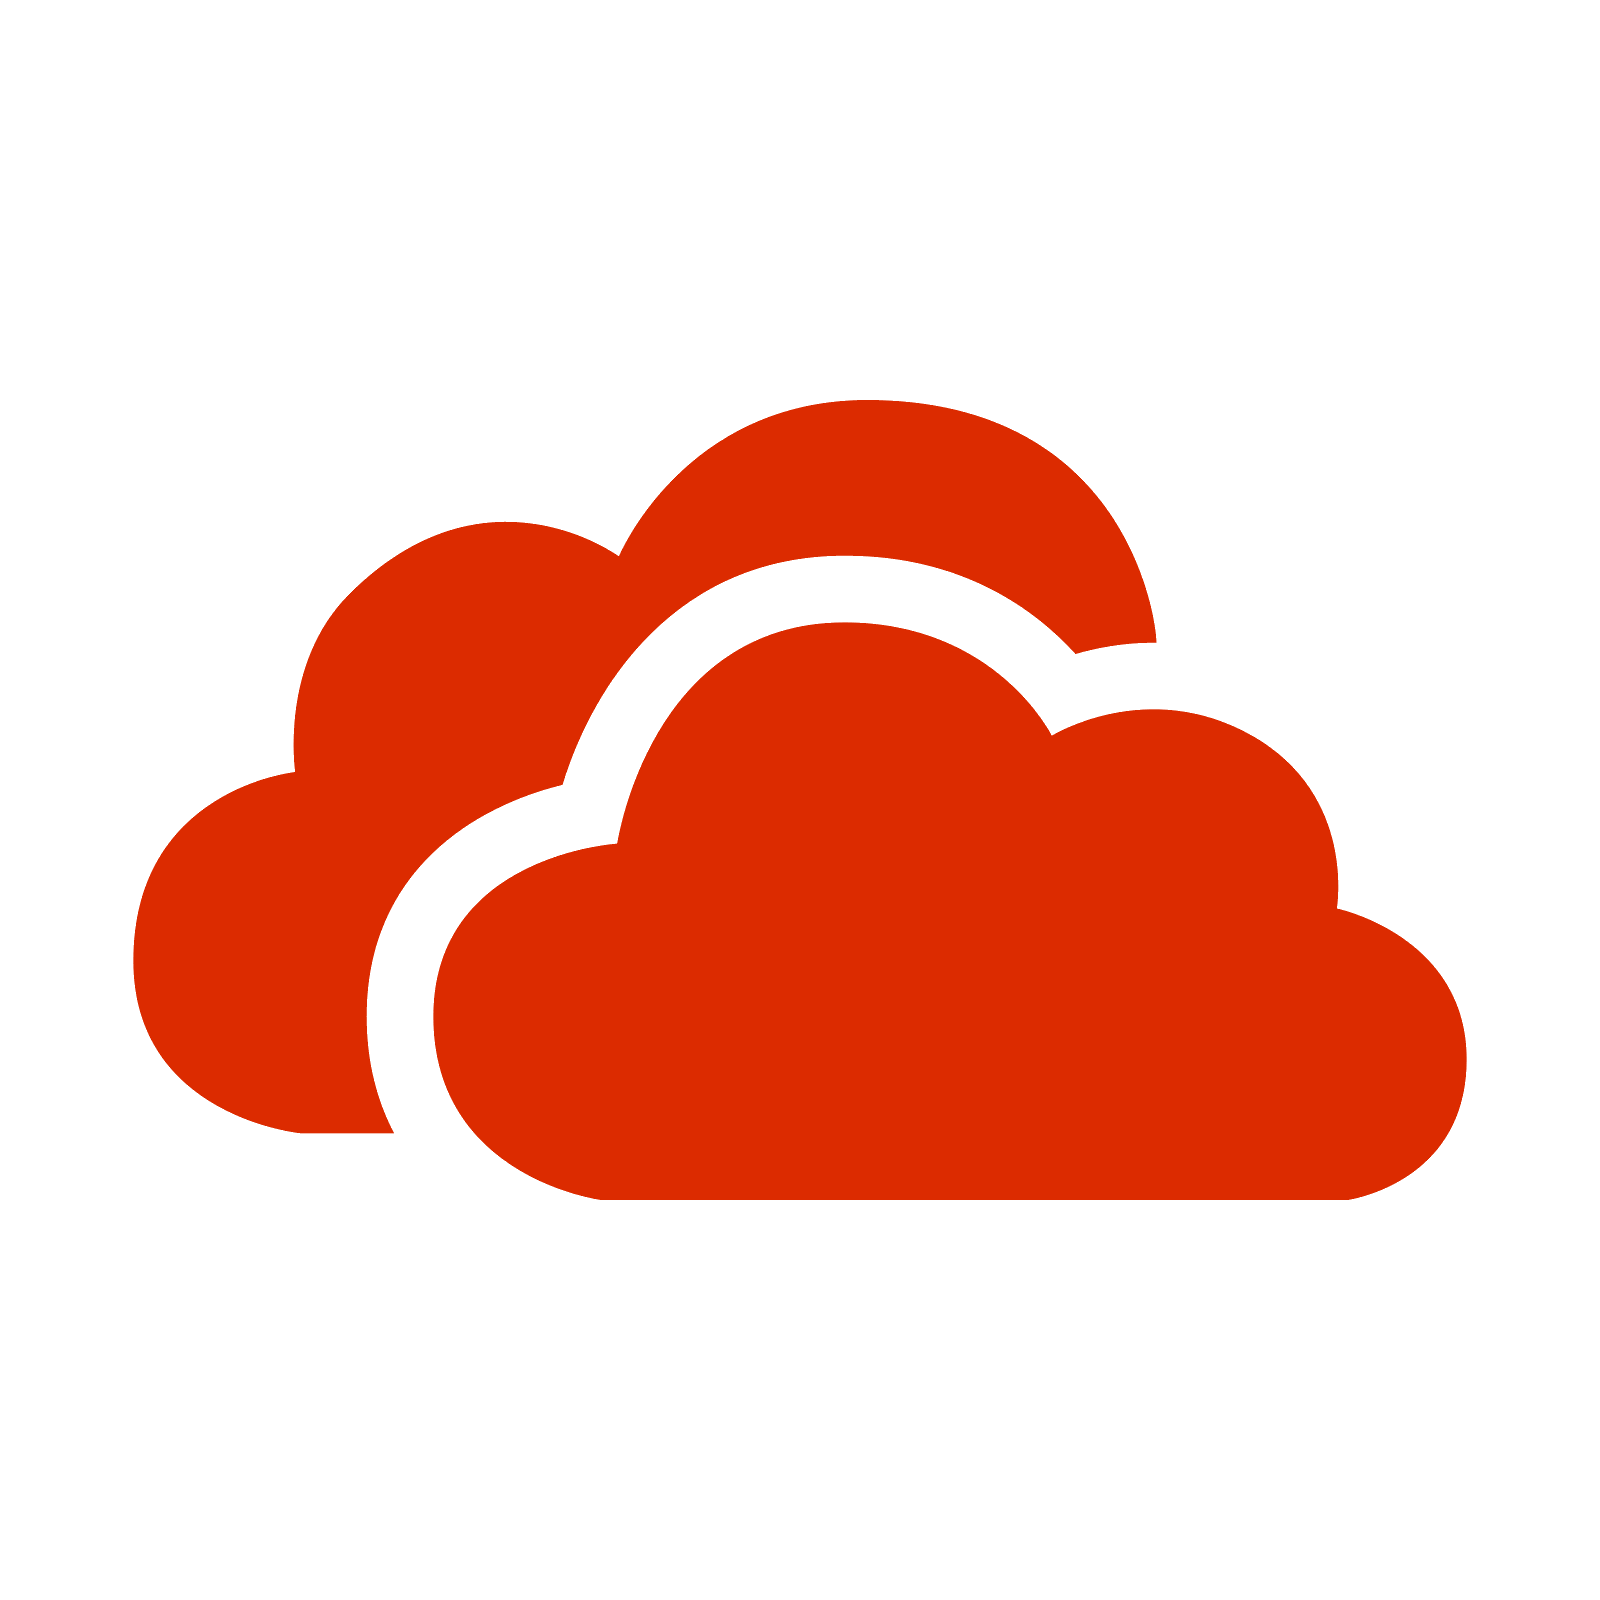 Red color png. Onedrive icon free download